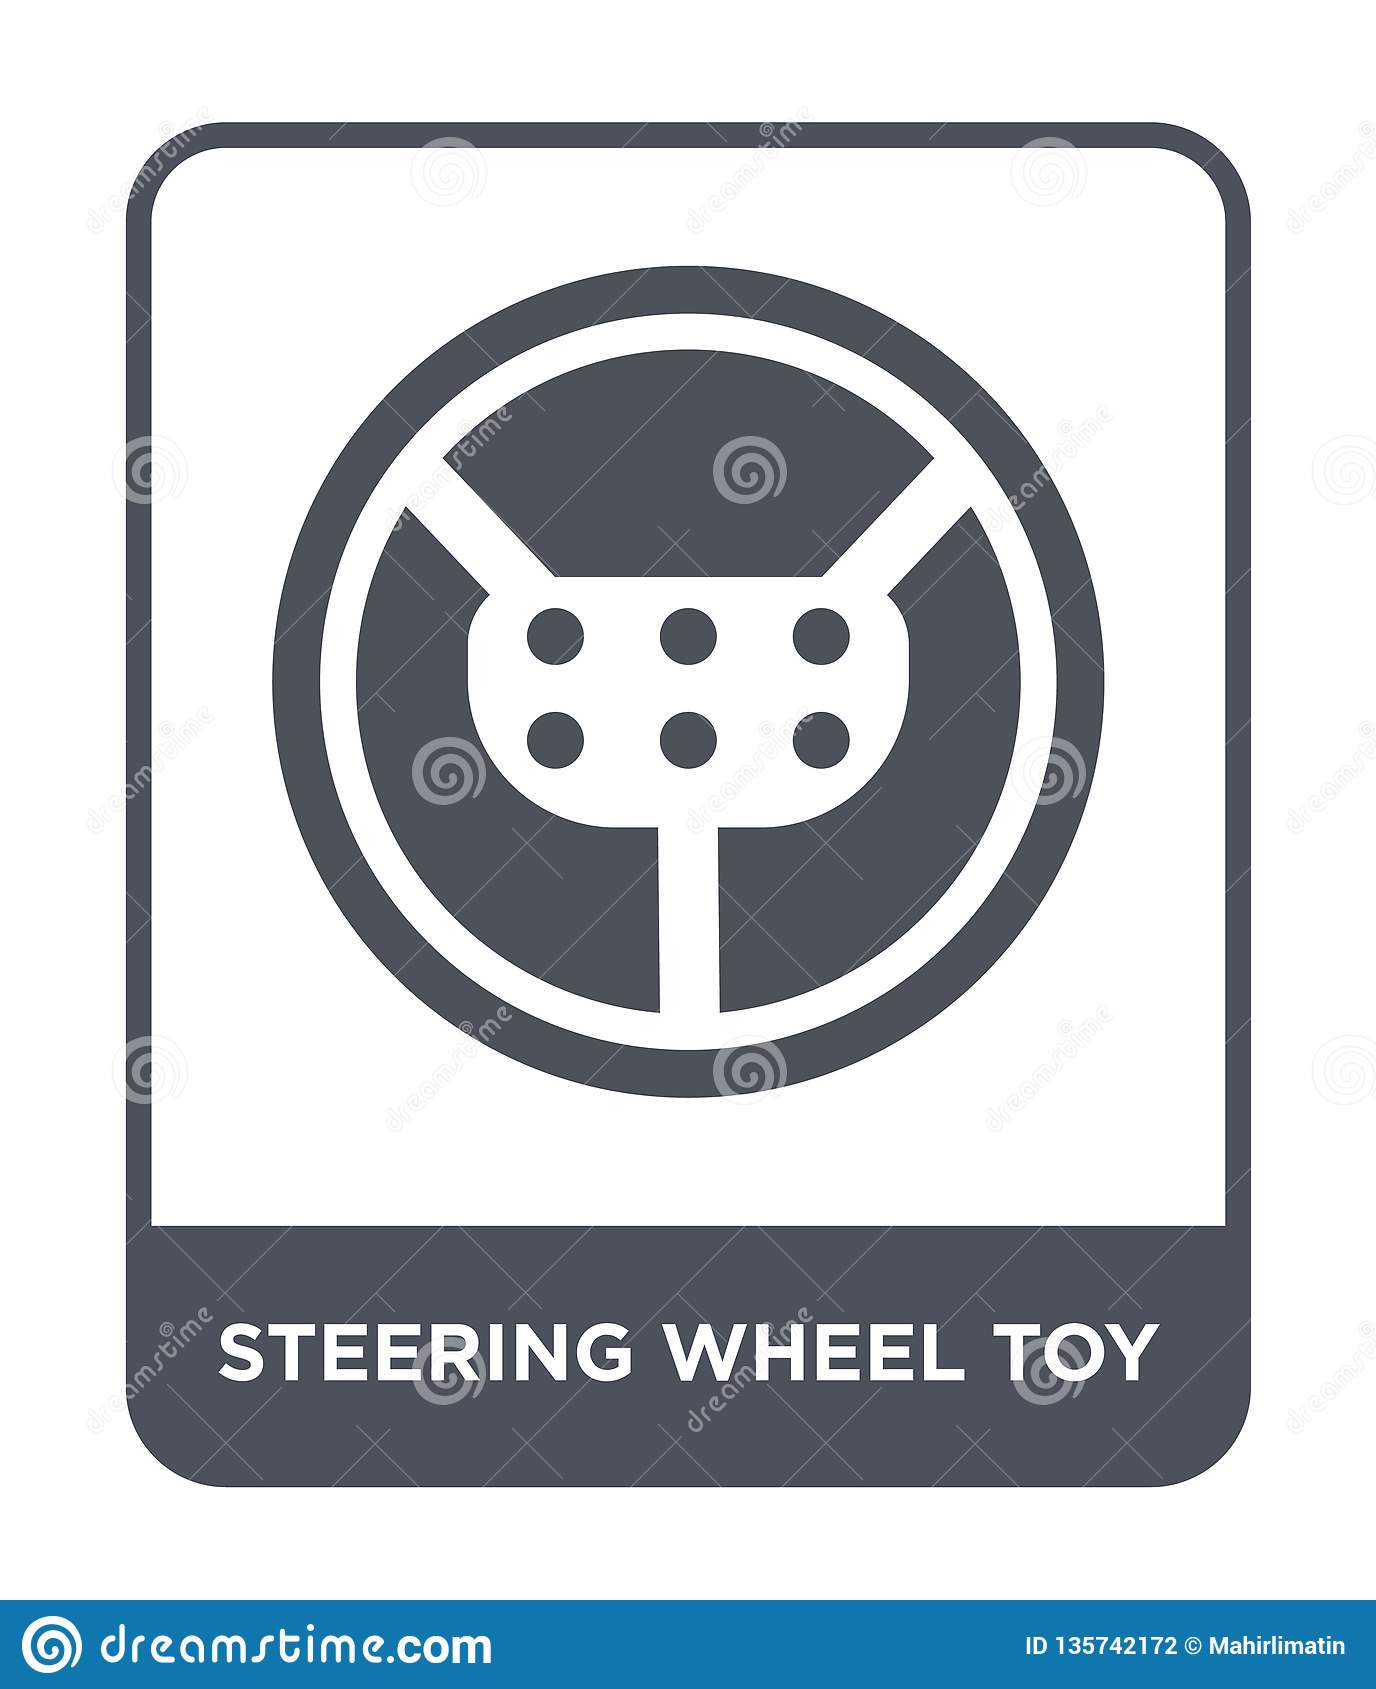 steering wheel toy icon in trendy design style. steering wheel toy icon isolated on white background. steering wheel toy vector